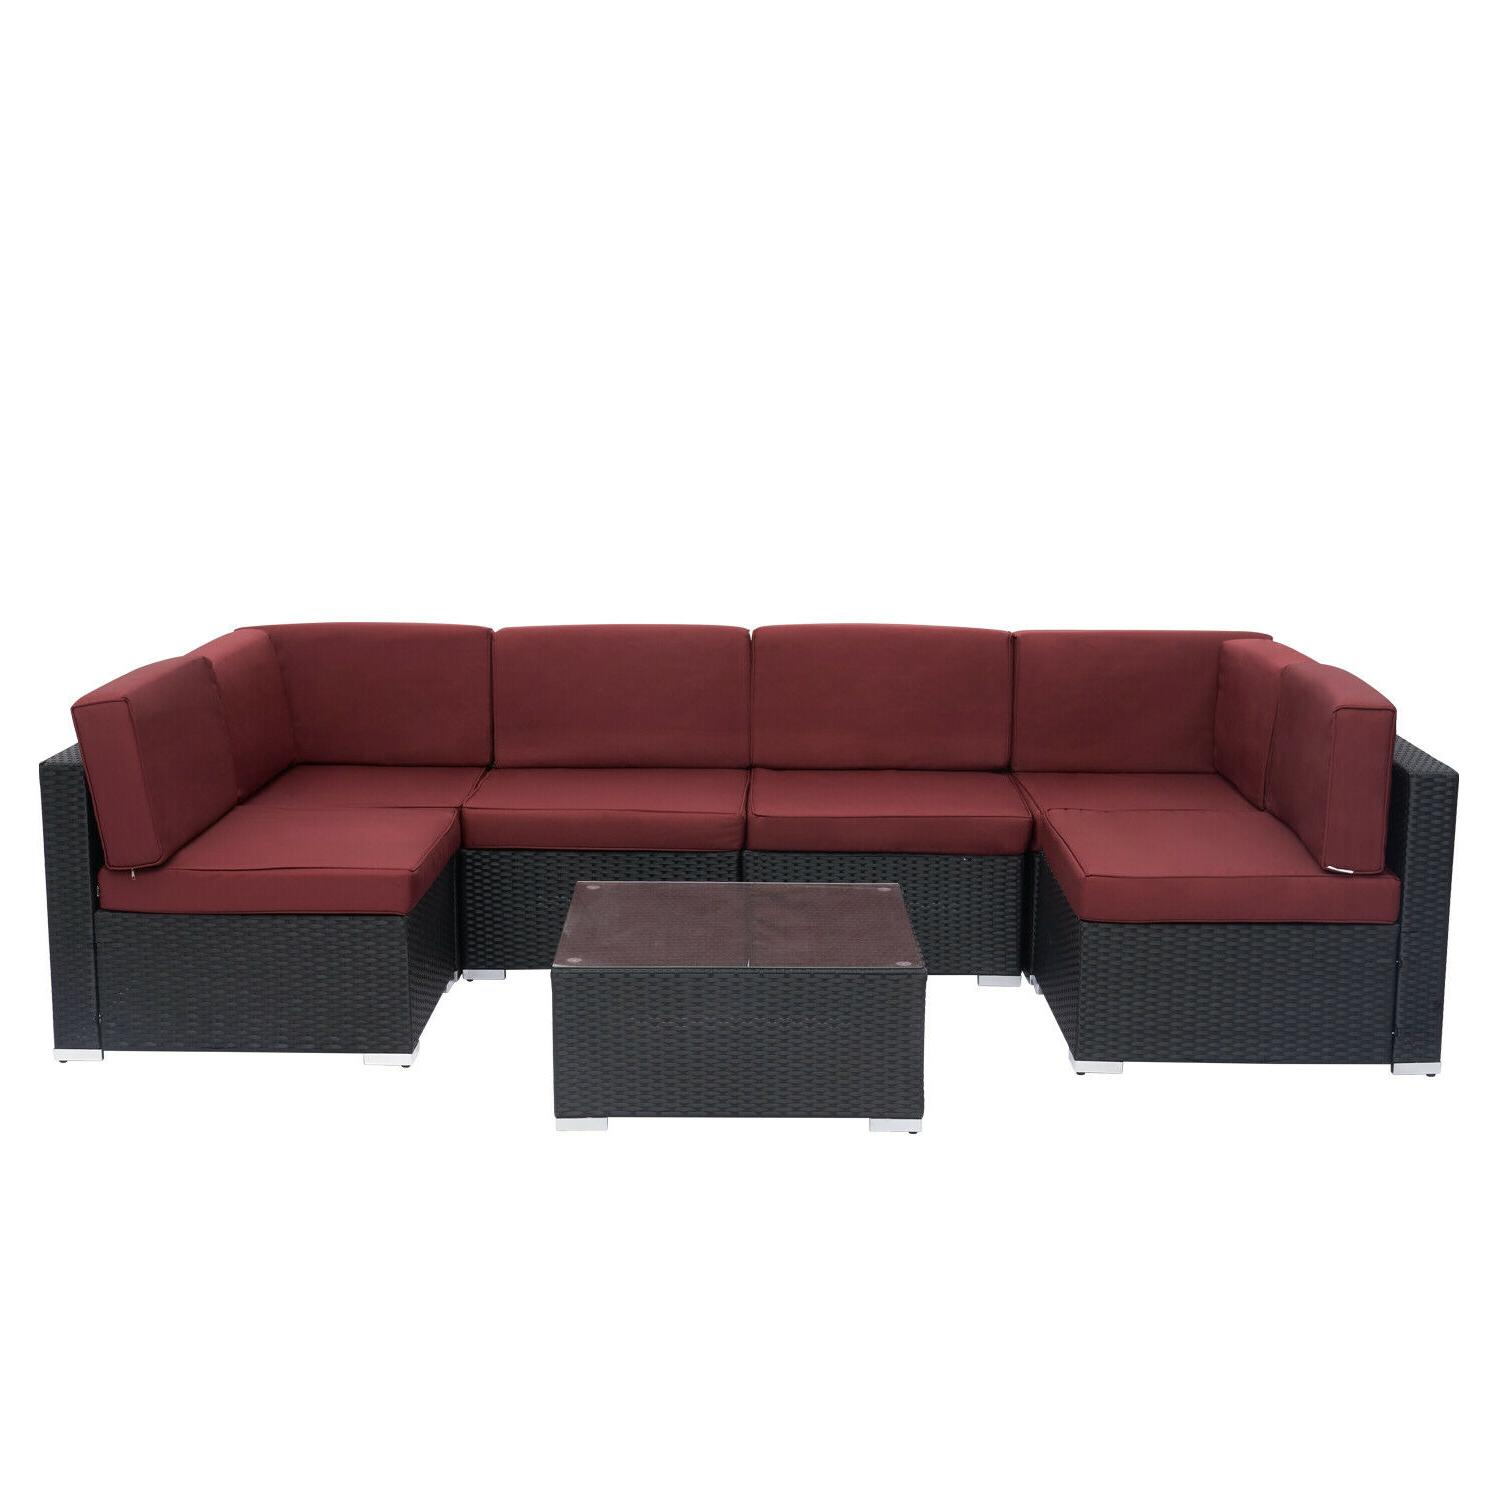 7PC Outdoor Patio Sofa PE Wicker Cushioned Sectional